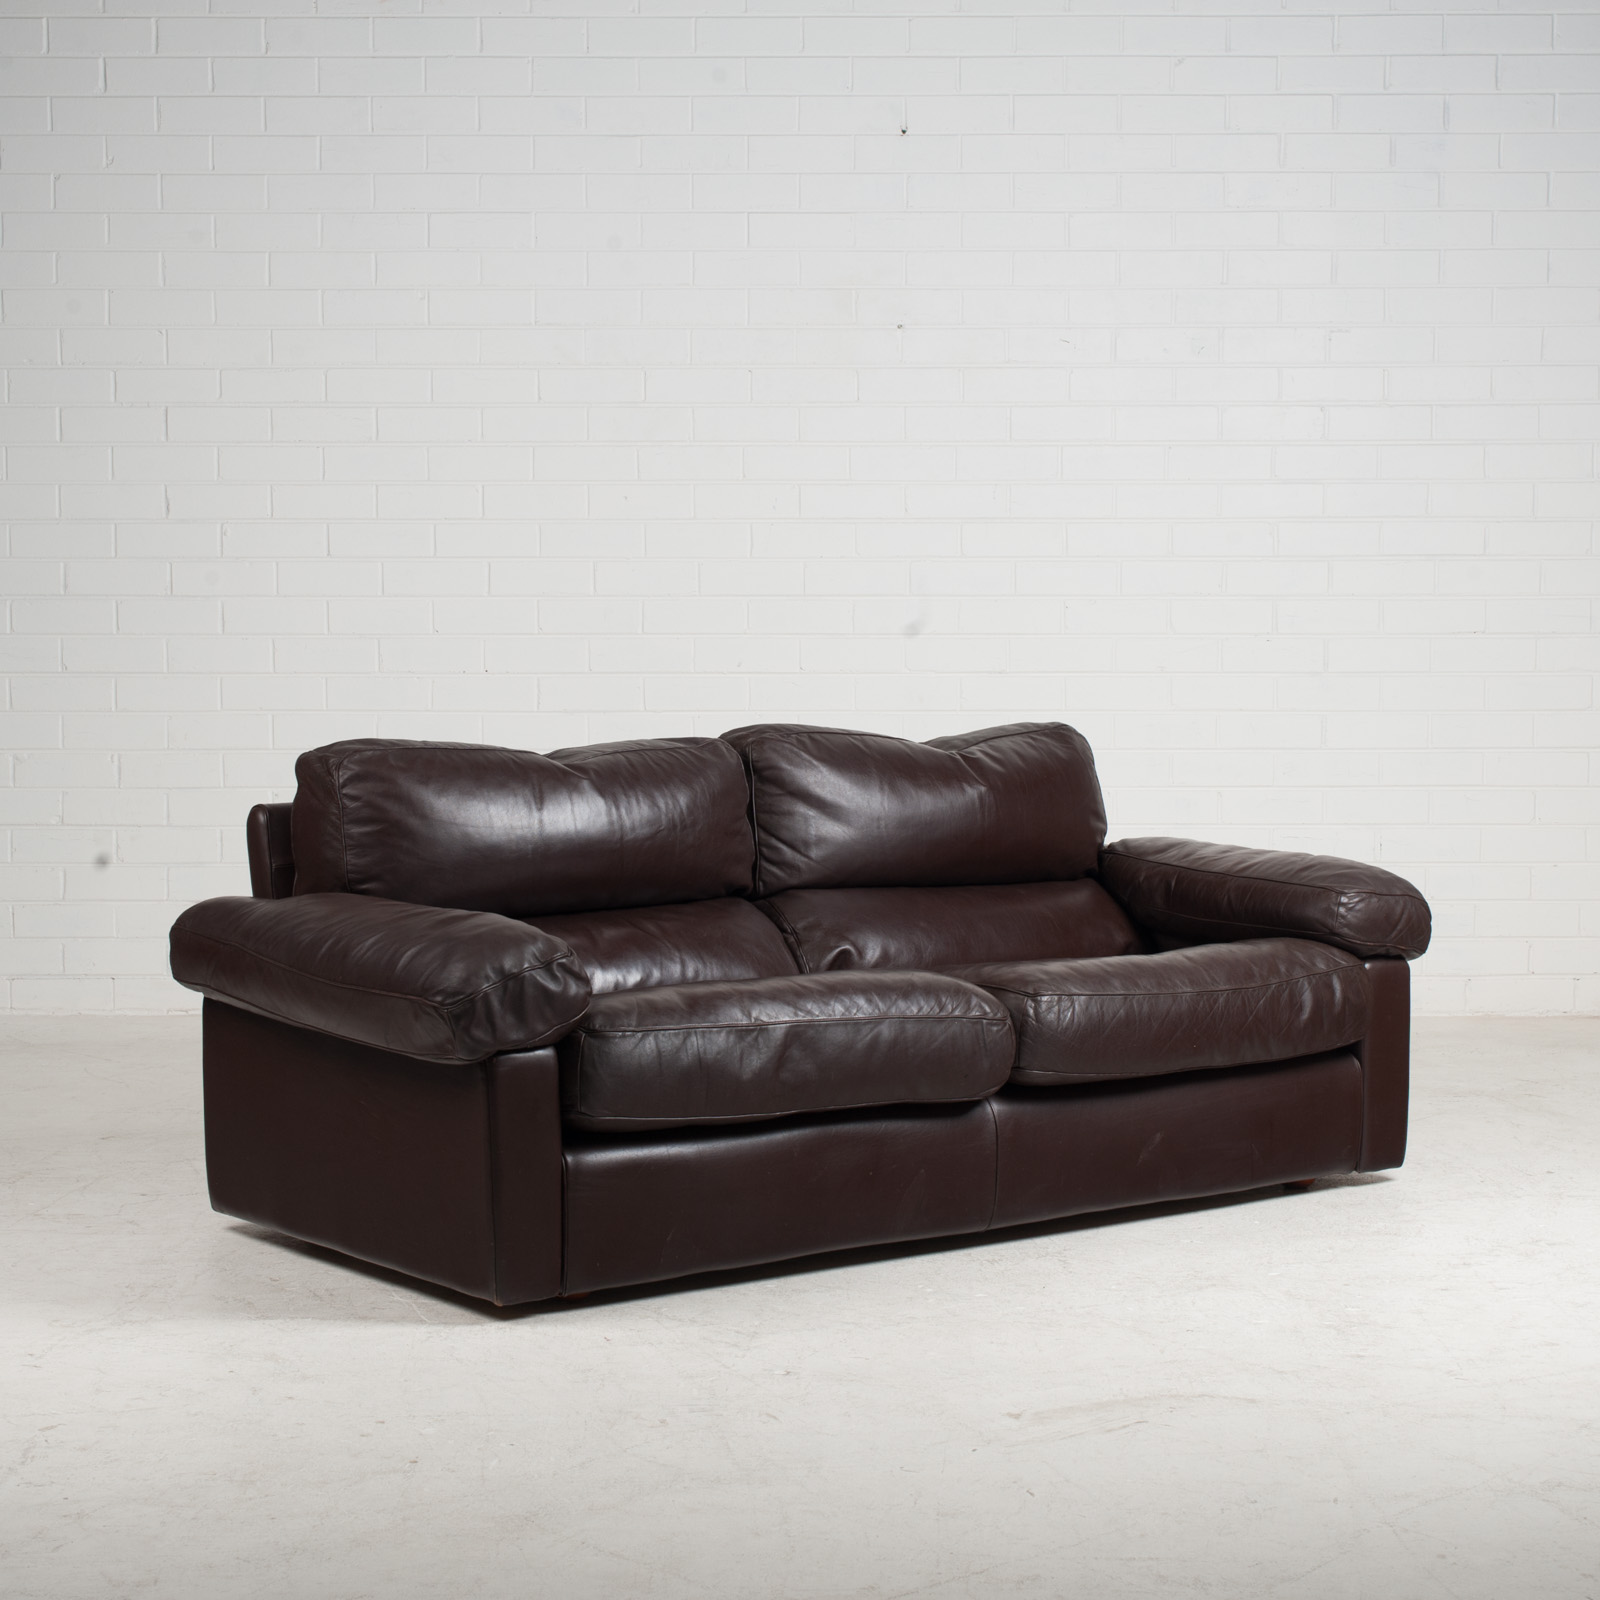 2 Seat Sofa By Tito Agnoli For Poltrona Frau In Chocolate Leather 1970s Italy 03